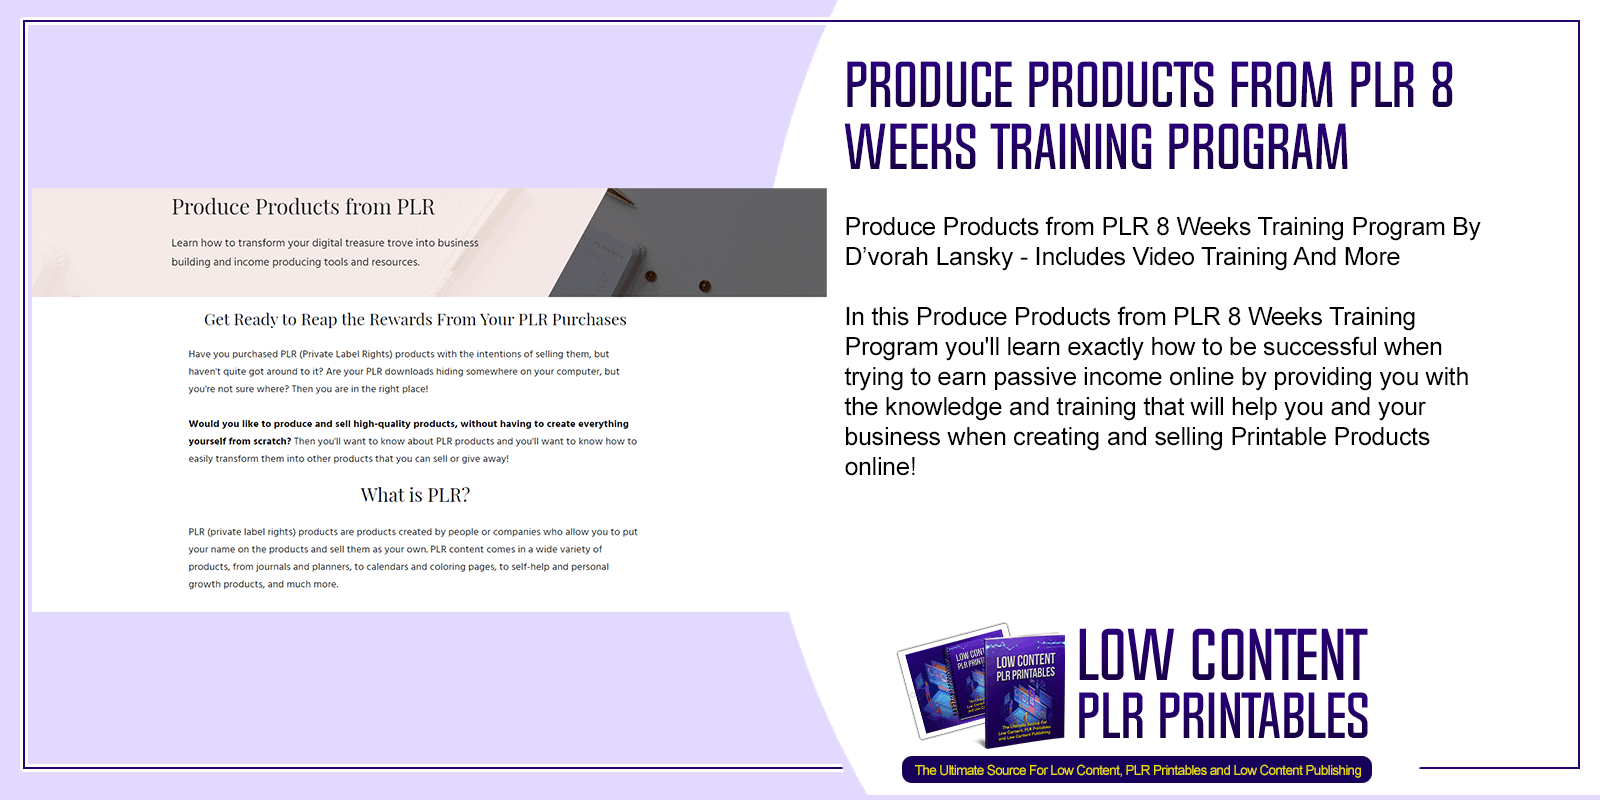 Produce Products from PLR 8 Weeks Training Program